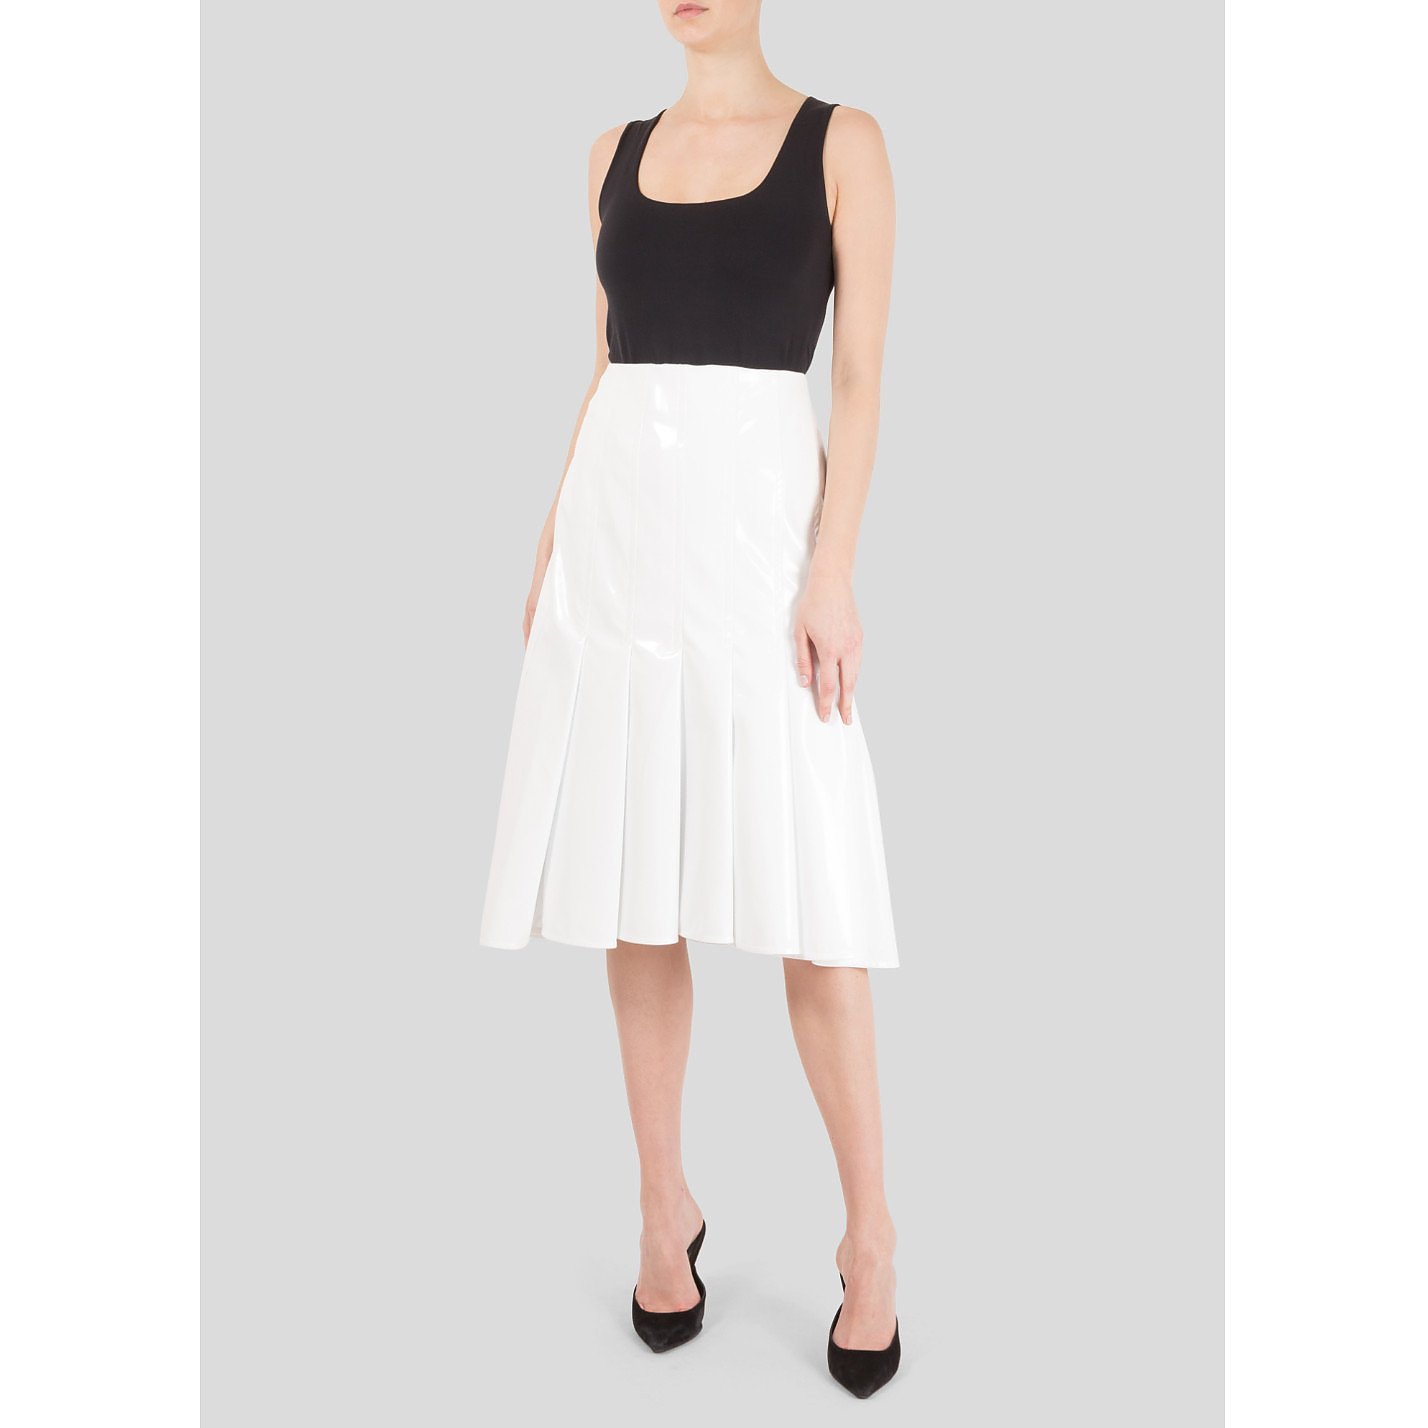 Eudon Choi Patent Pleated Skirt